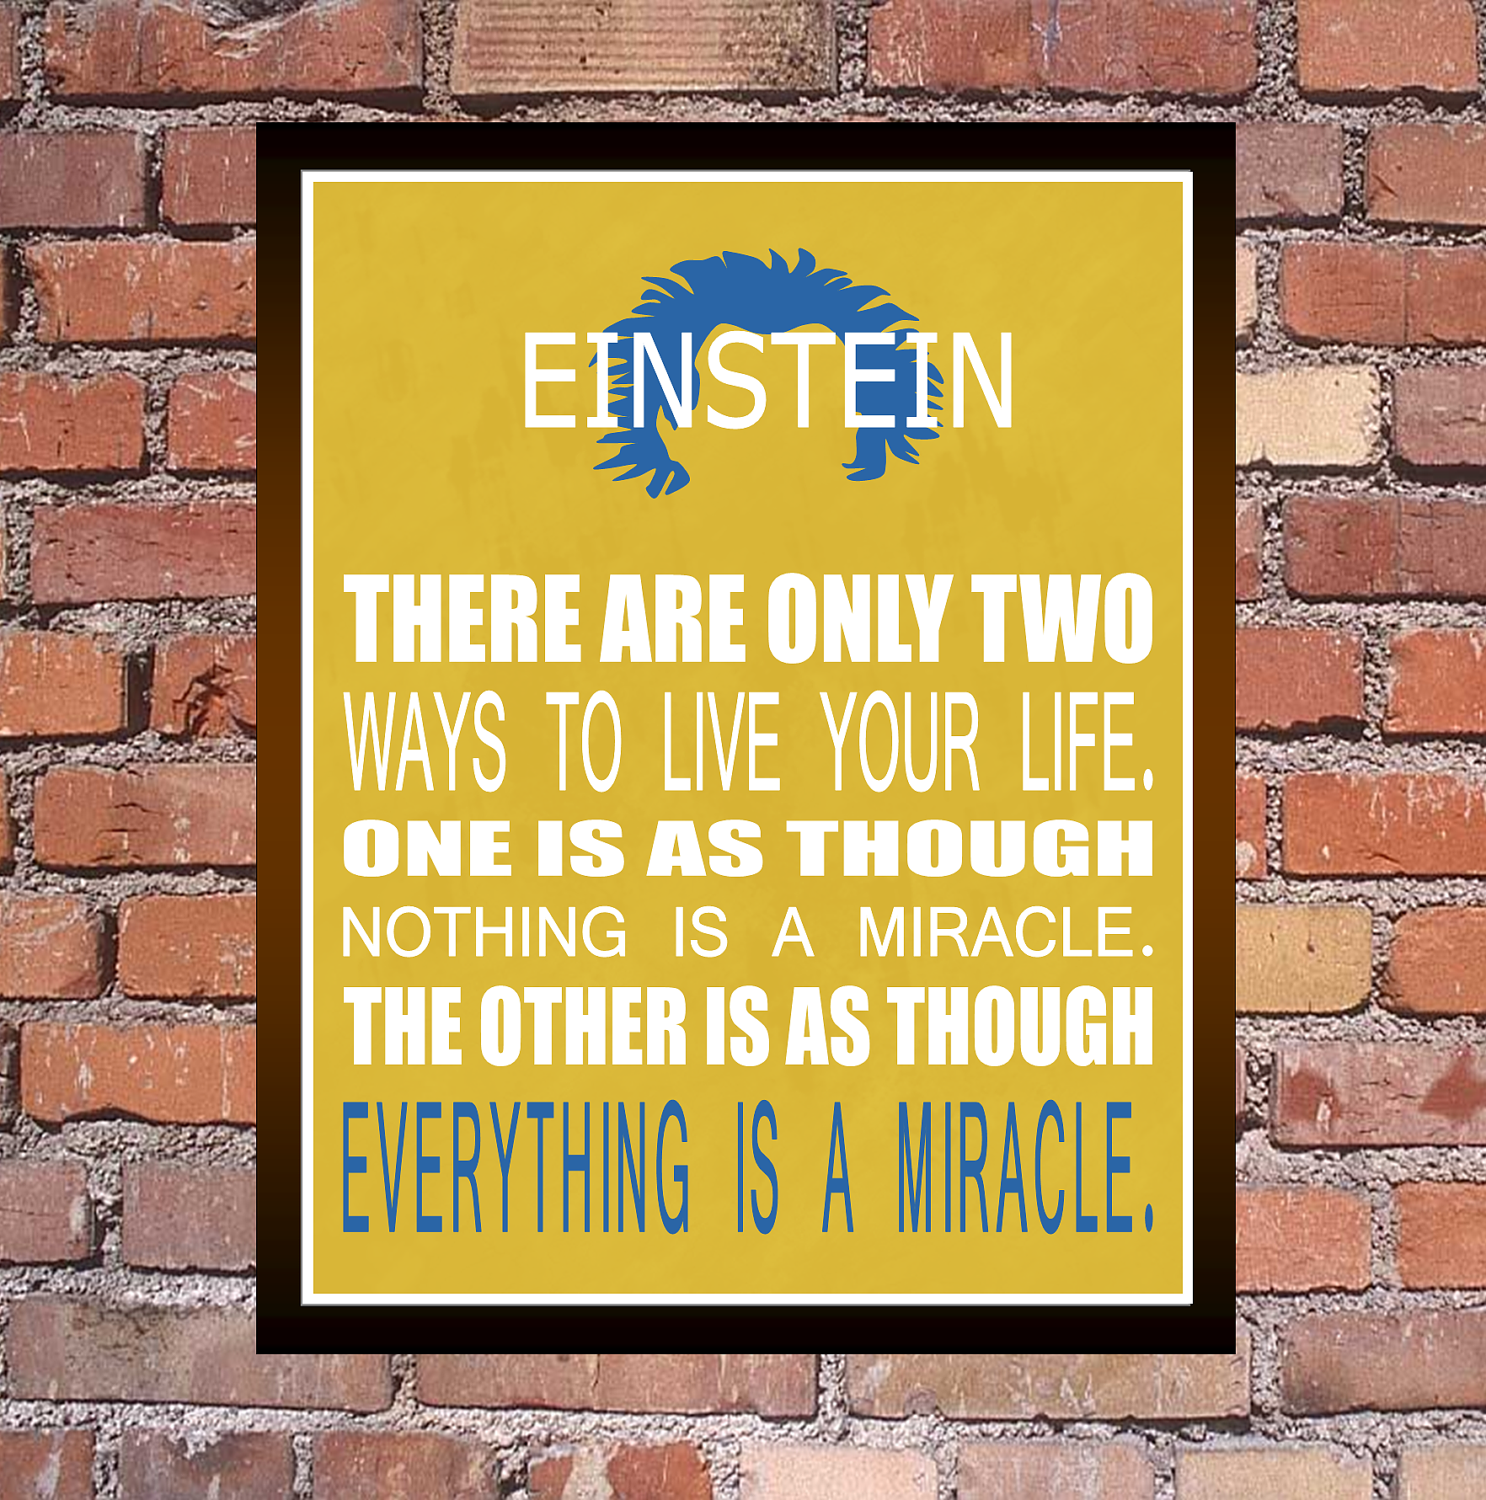 Everything Is A Miracle - Albert Einstein - Inspirational ...